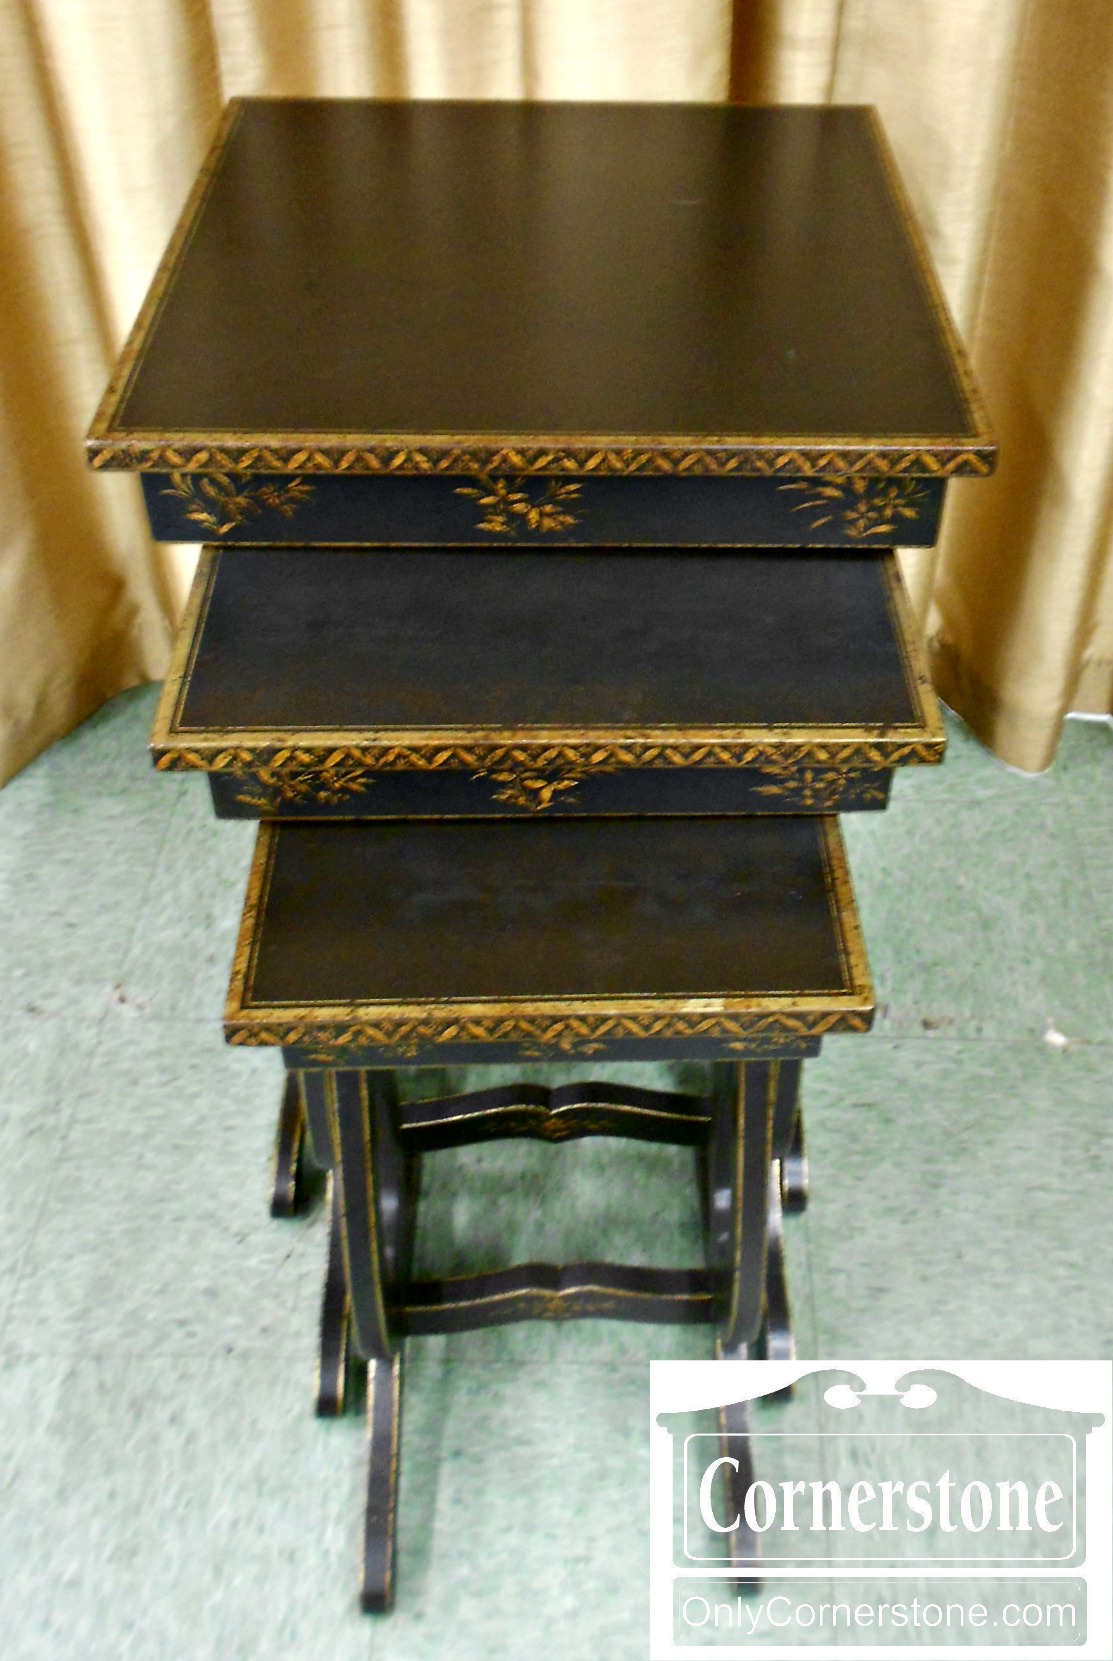 5666-466 Black Nesting Tables with Gold Decoration